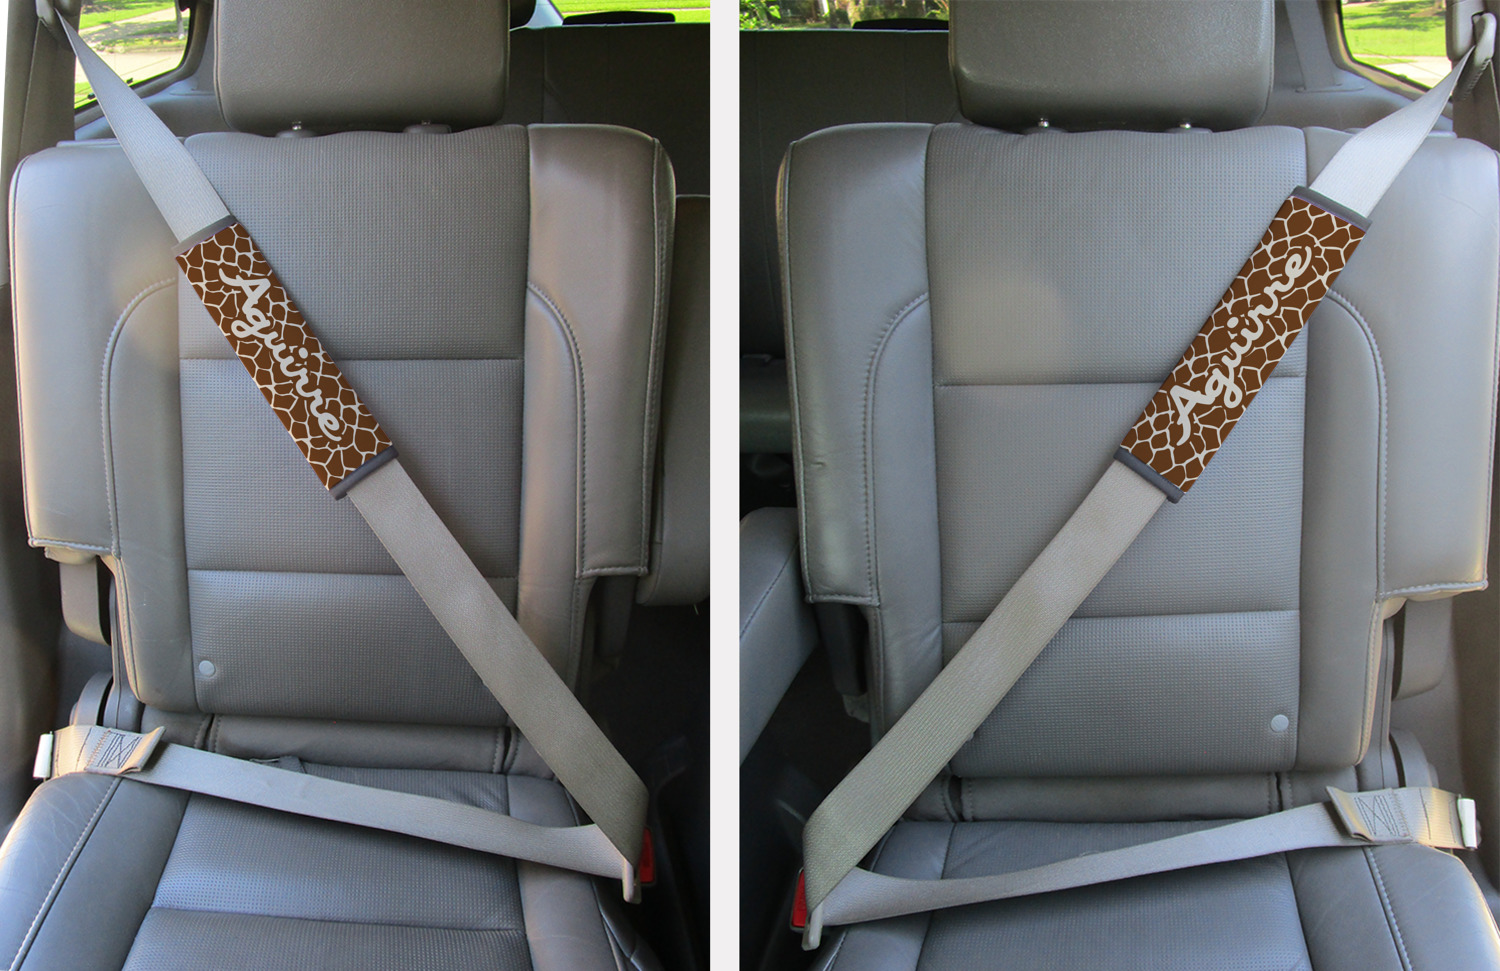 Peachy Giraffe Print Seat Belt Covers Set Of 2 Personalized Short Links Chair Design For Home Short Linksinfo